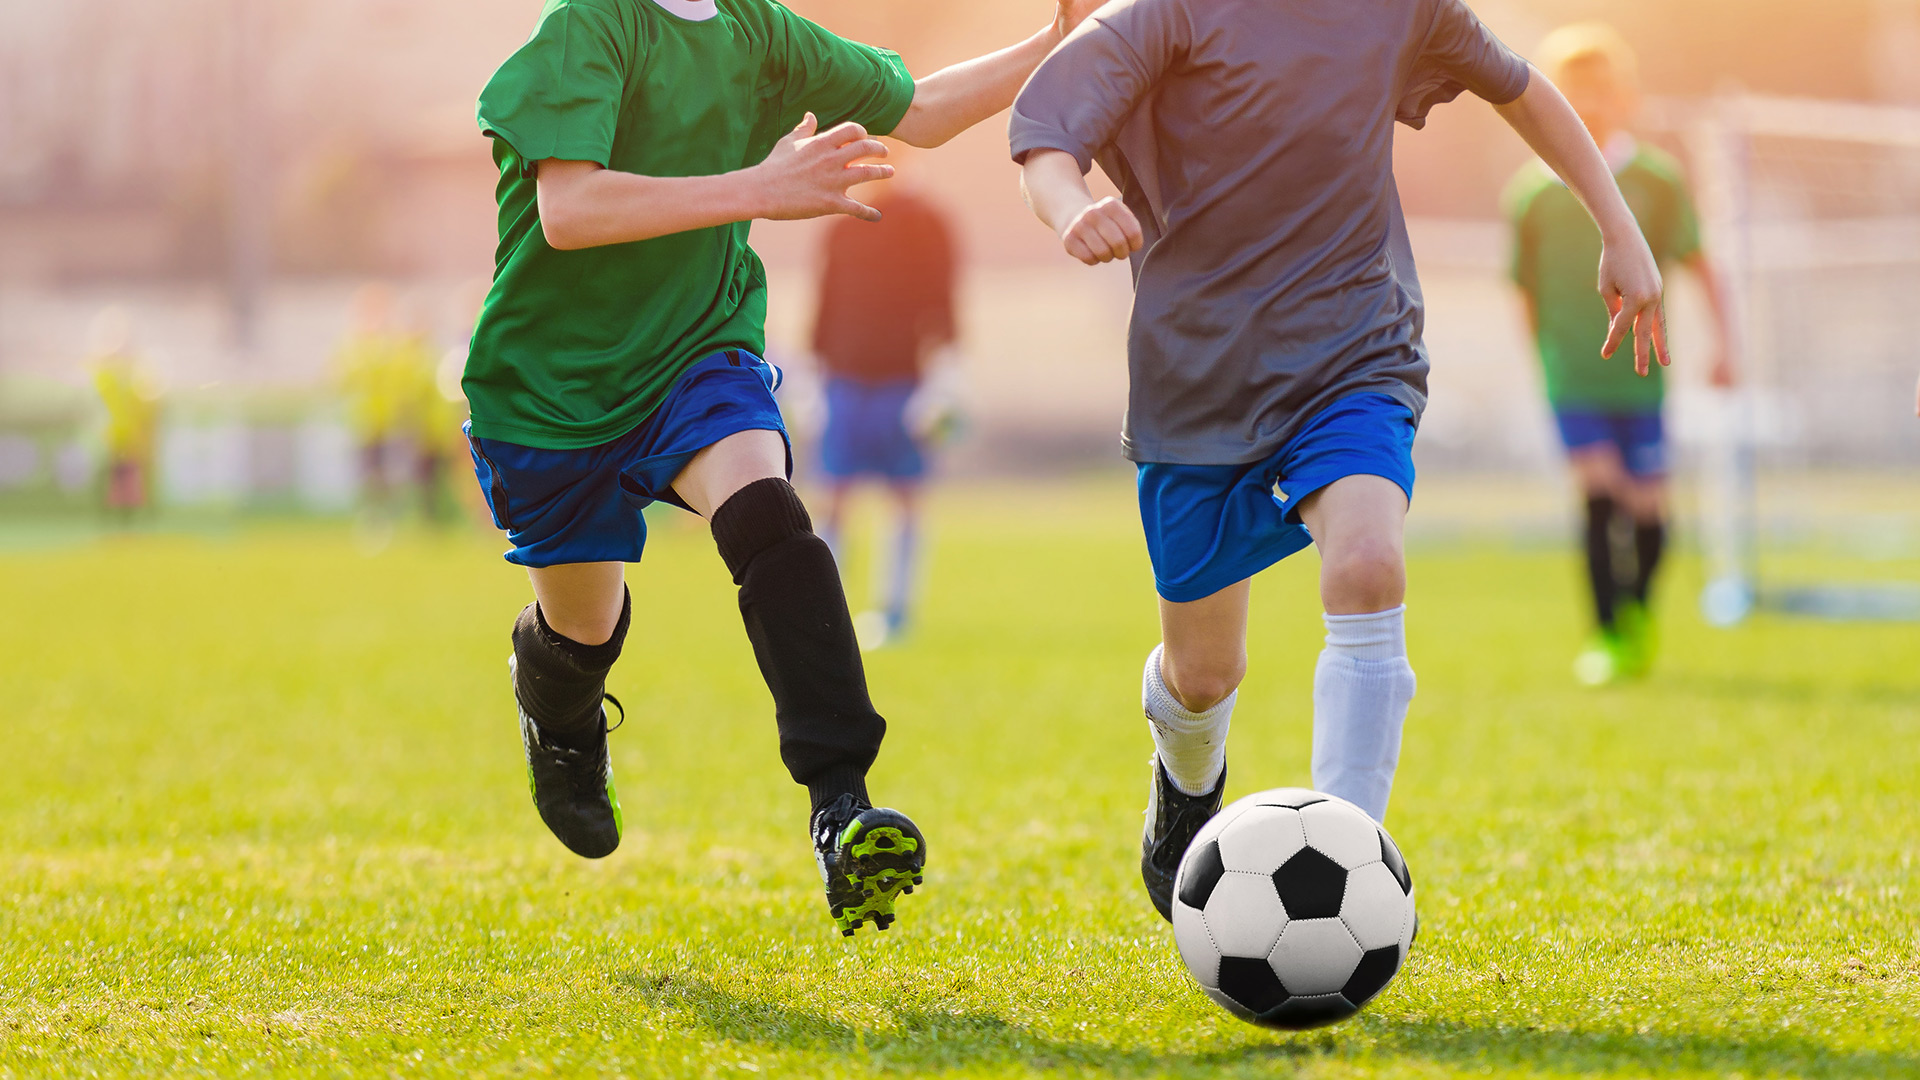 With the lifting of COVID-19 restrictions in many areas, lots of kids are getting back into team sports. Here's what parents and coaches need to know to keep kids healthy, safe, and active.